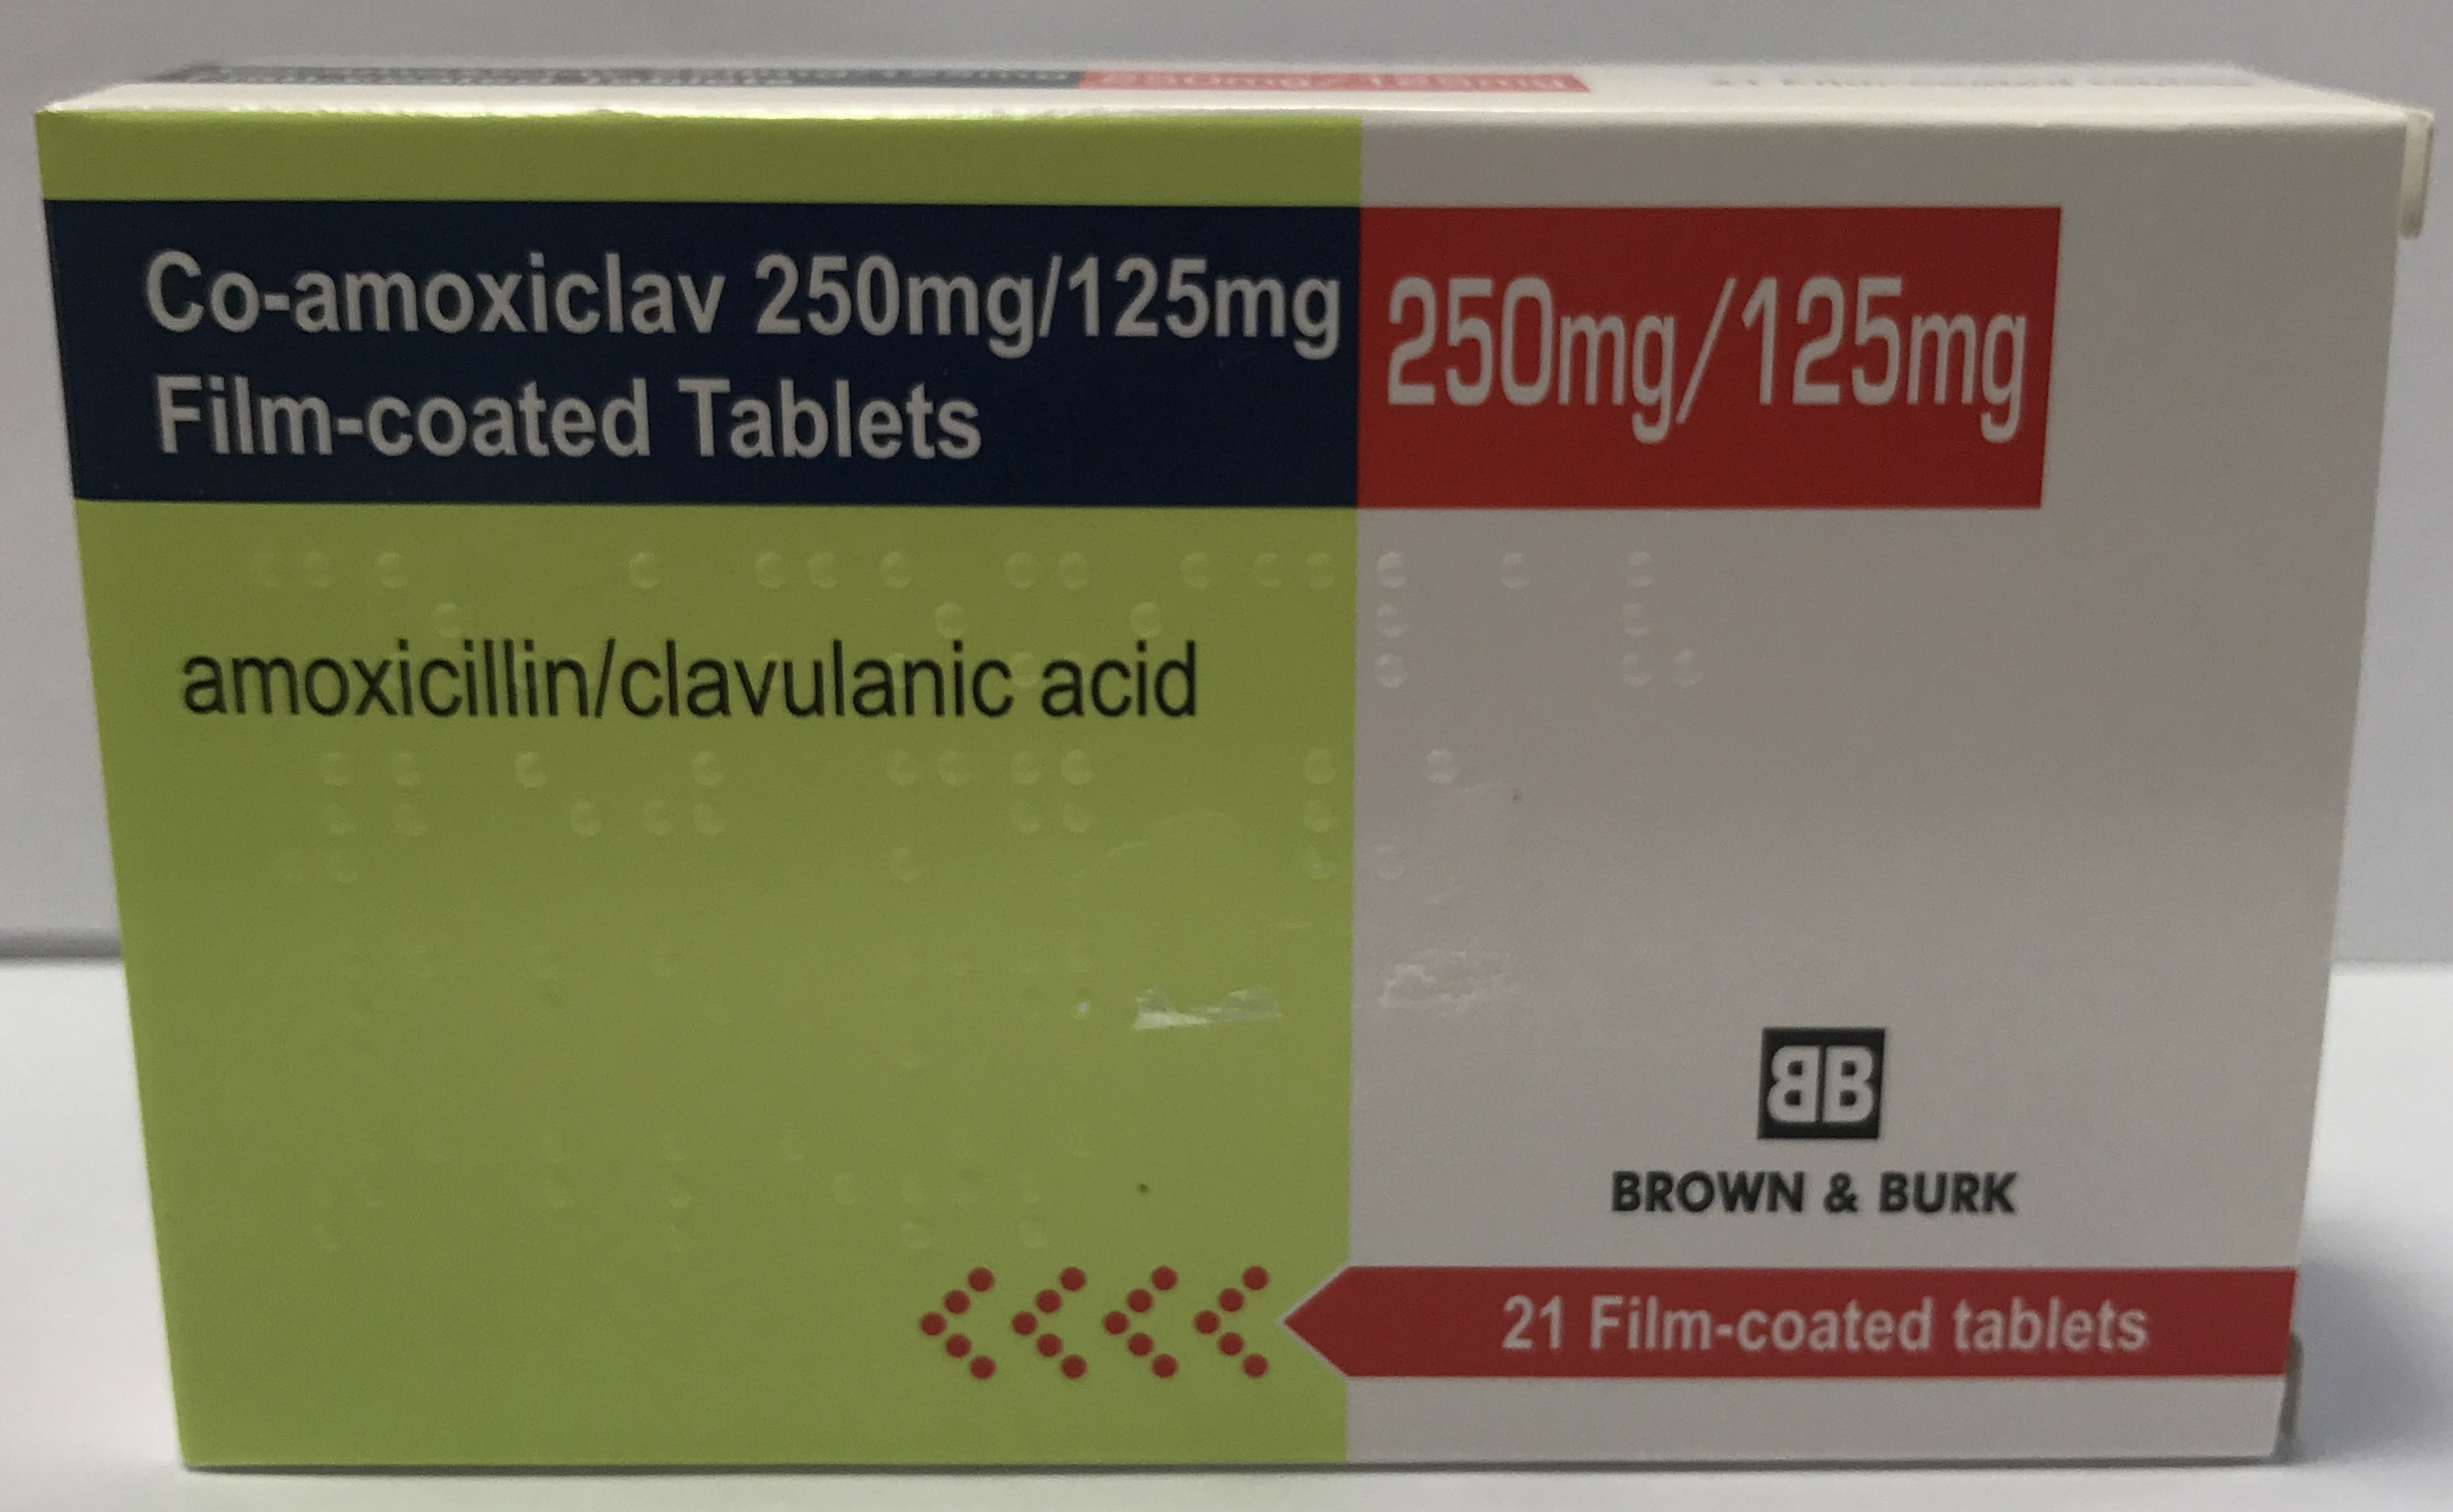 Co Amoxiclav 250mg/125mg